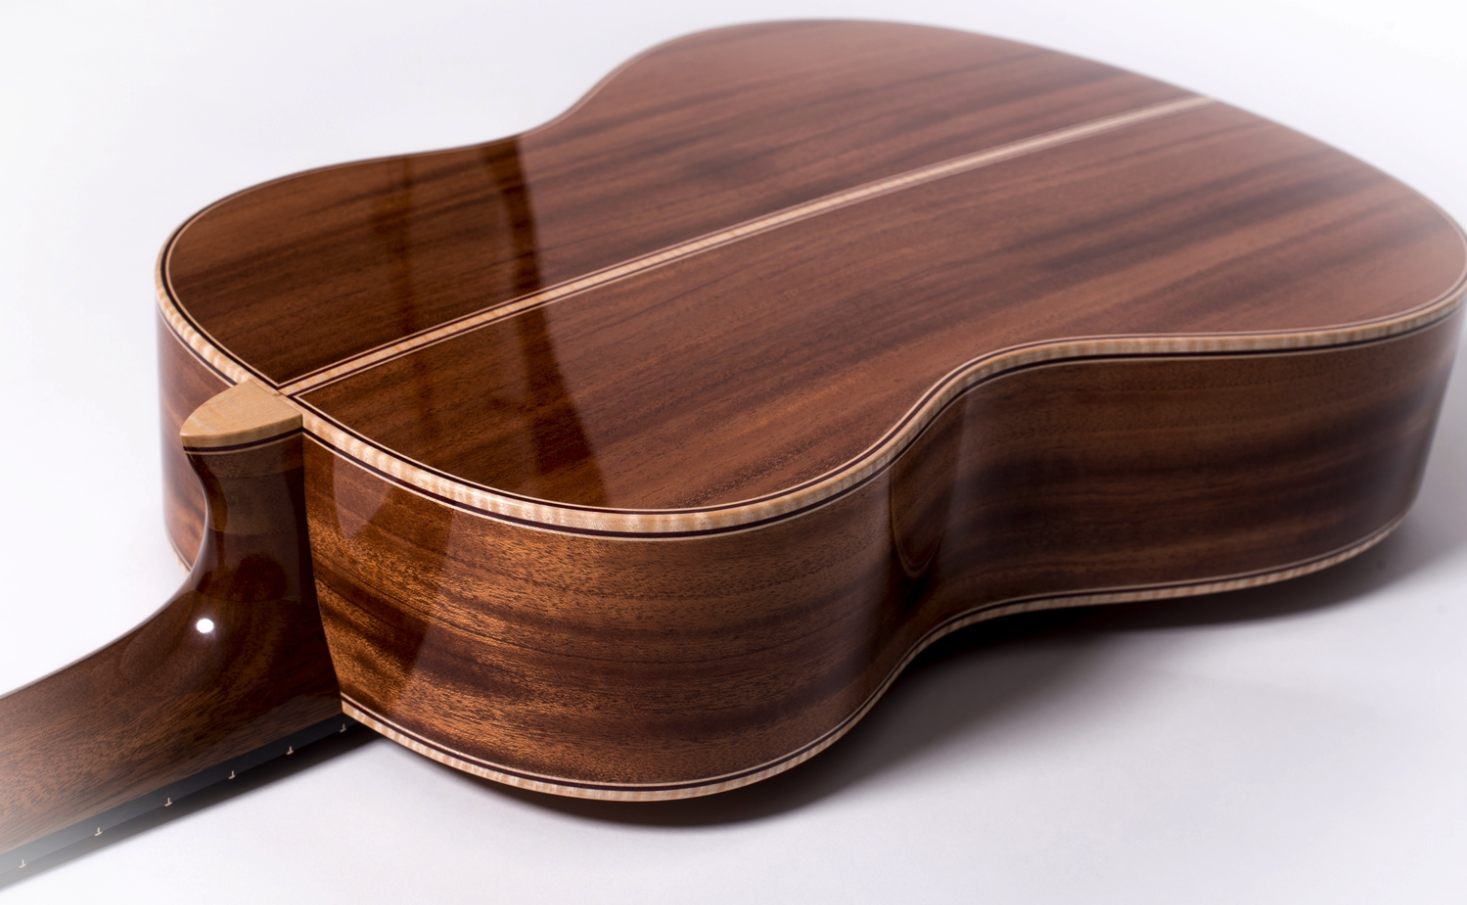 Perfect view of the wonderful African Mahogany grain